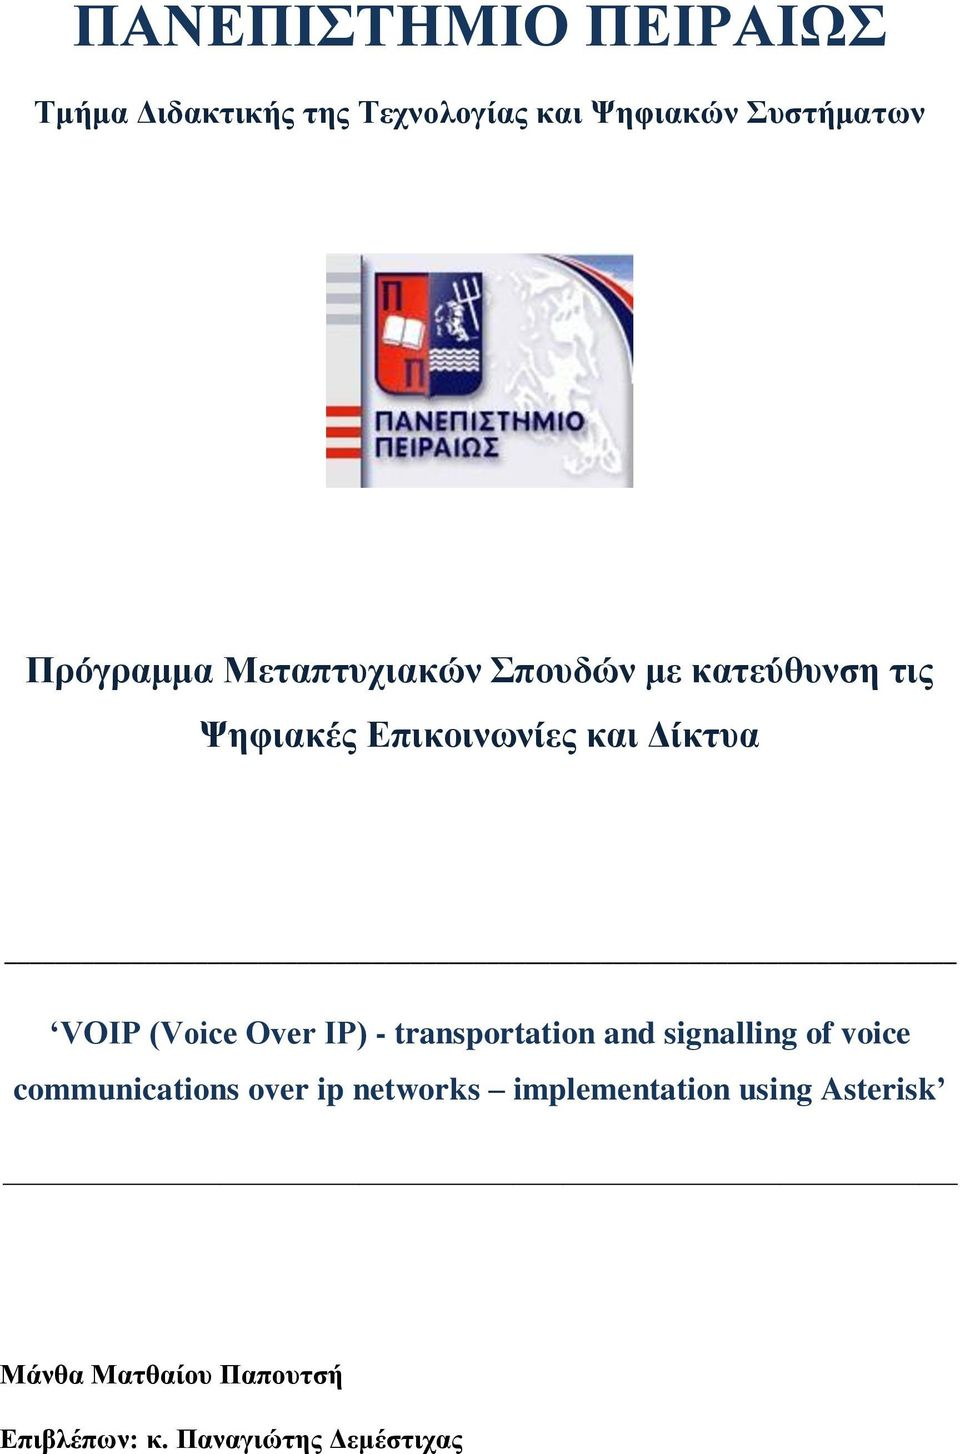 VOIP (Voice Over IP) - transportation and signalling of voice communications over ip